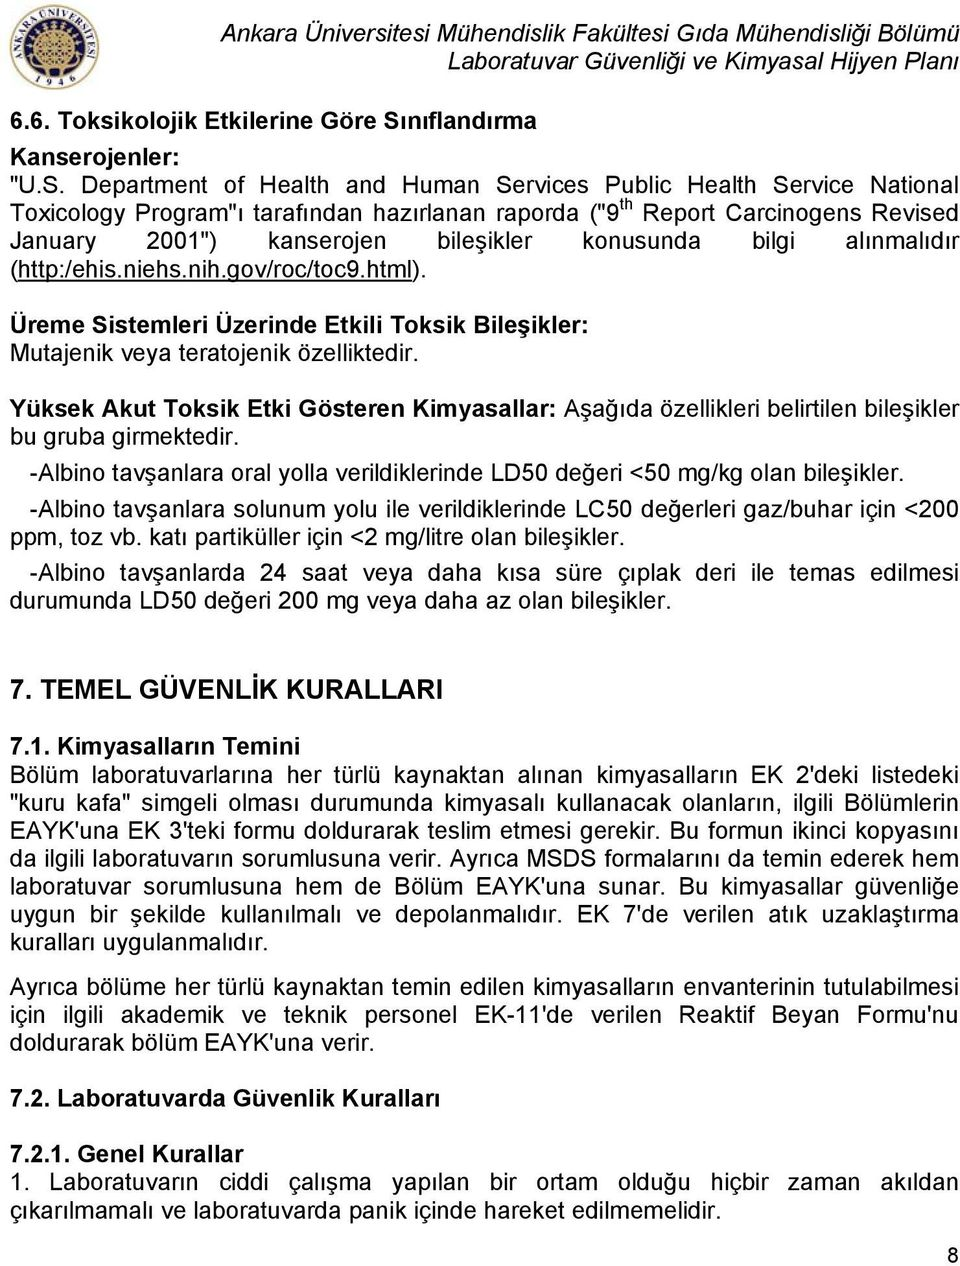 "Department of Health and Human Services Public Health Service National Toxicology Program""ı tarafından hazırlanan raporda (""9 th Report Carcinogens Revised January 2001"") kanserojen bileşikler"